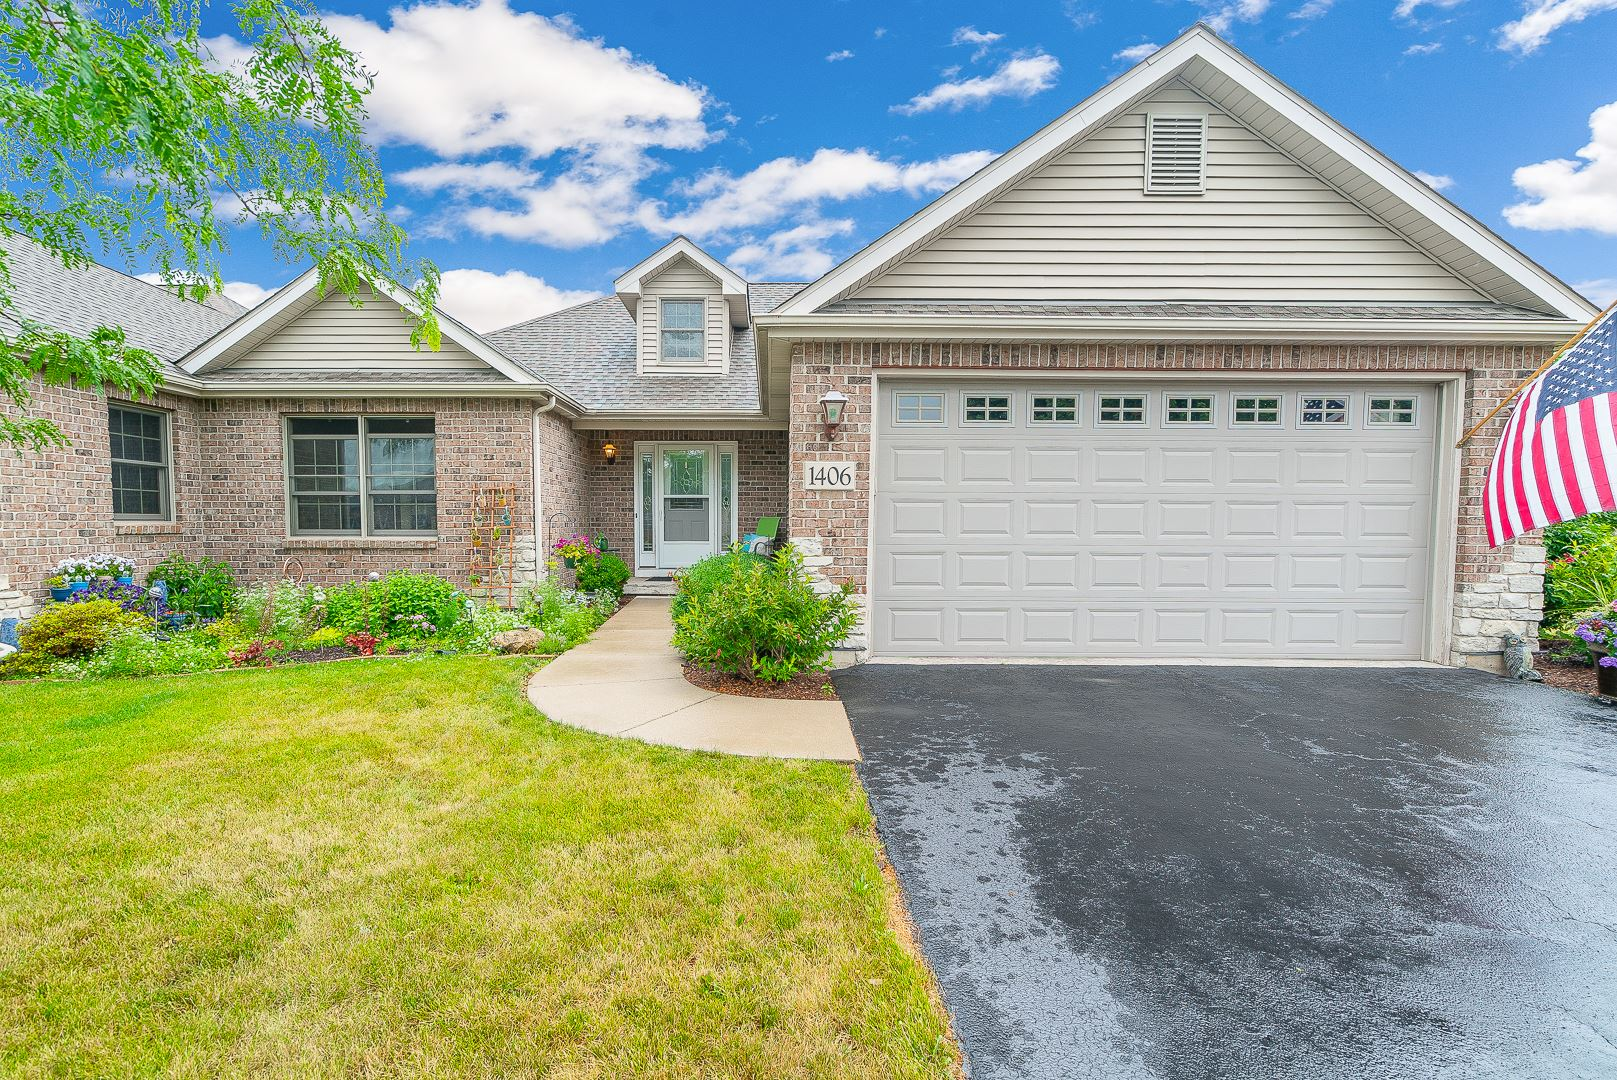 1406 Cannonball Trail, Yorkville, IL 60560 - #: 10774343